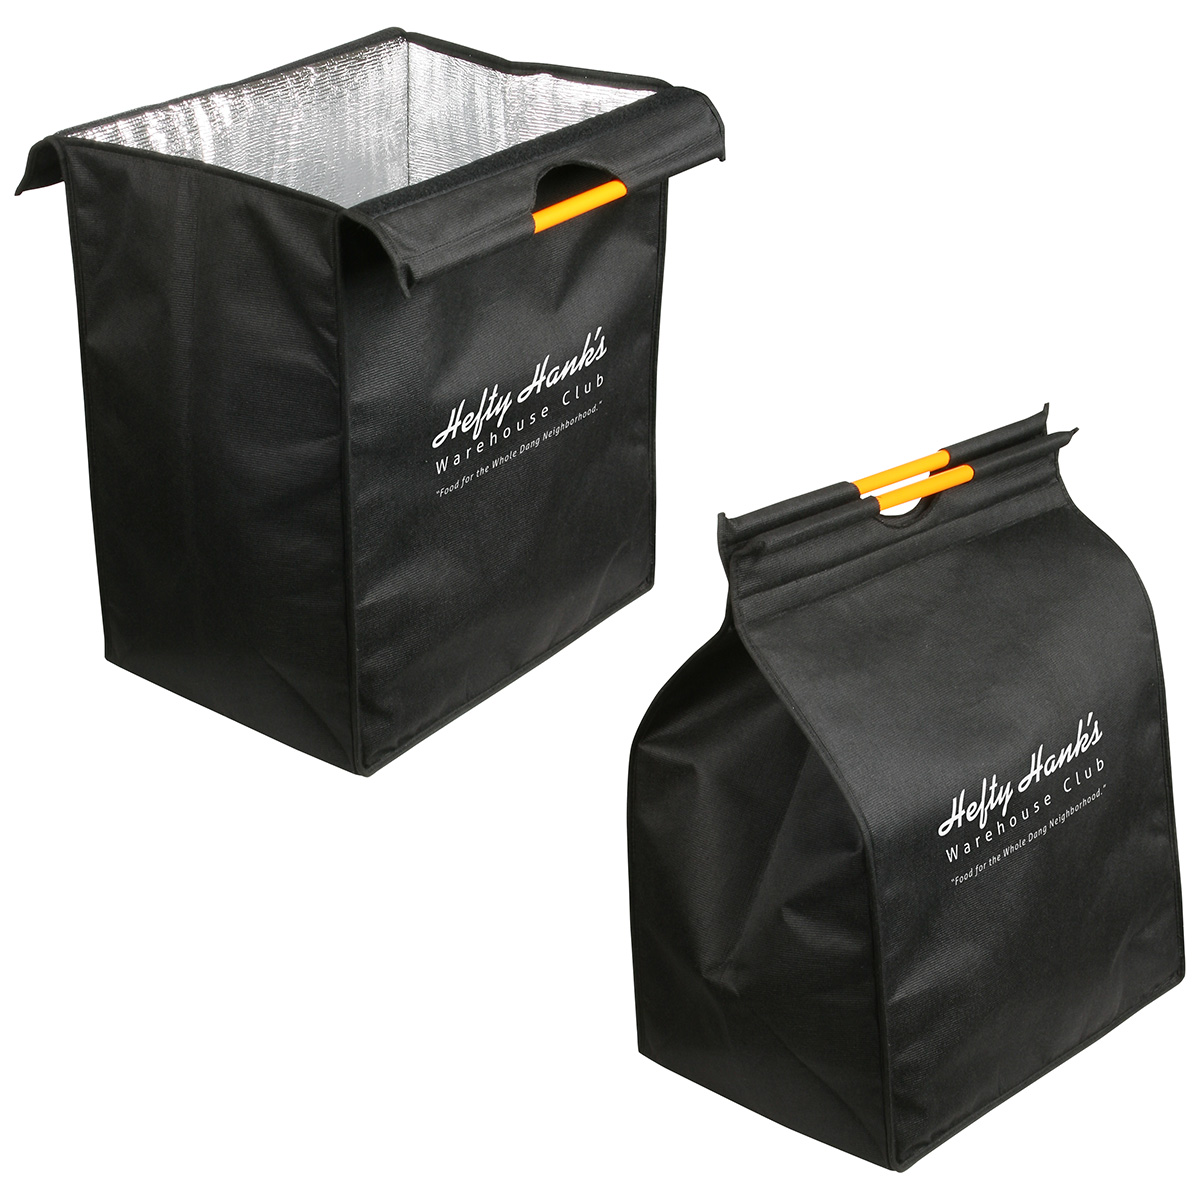 XL Insulated Recycled P.E.T. Cooler Bag, WBA-XR10 - 1 Colour Imprint